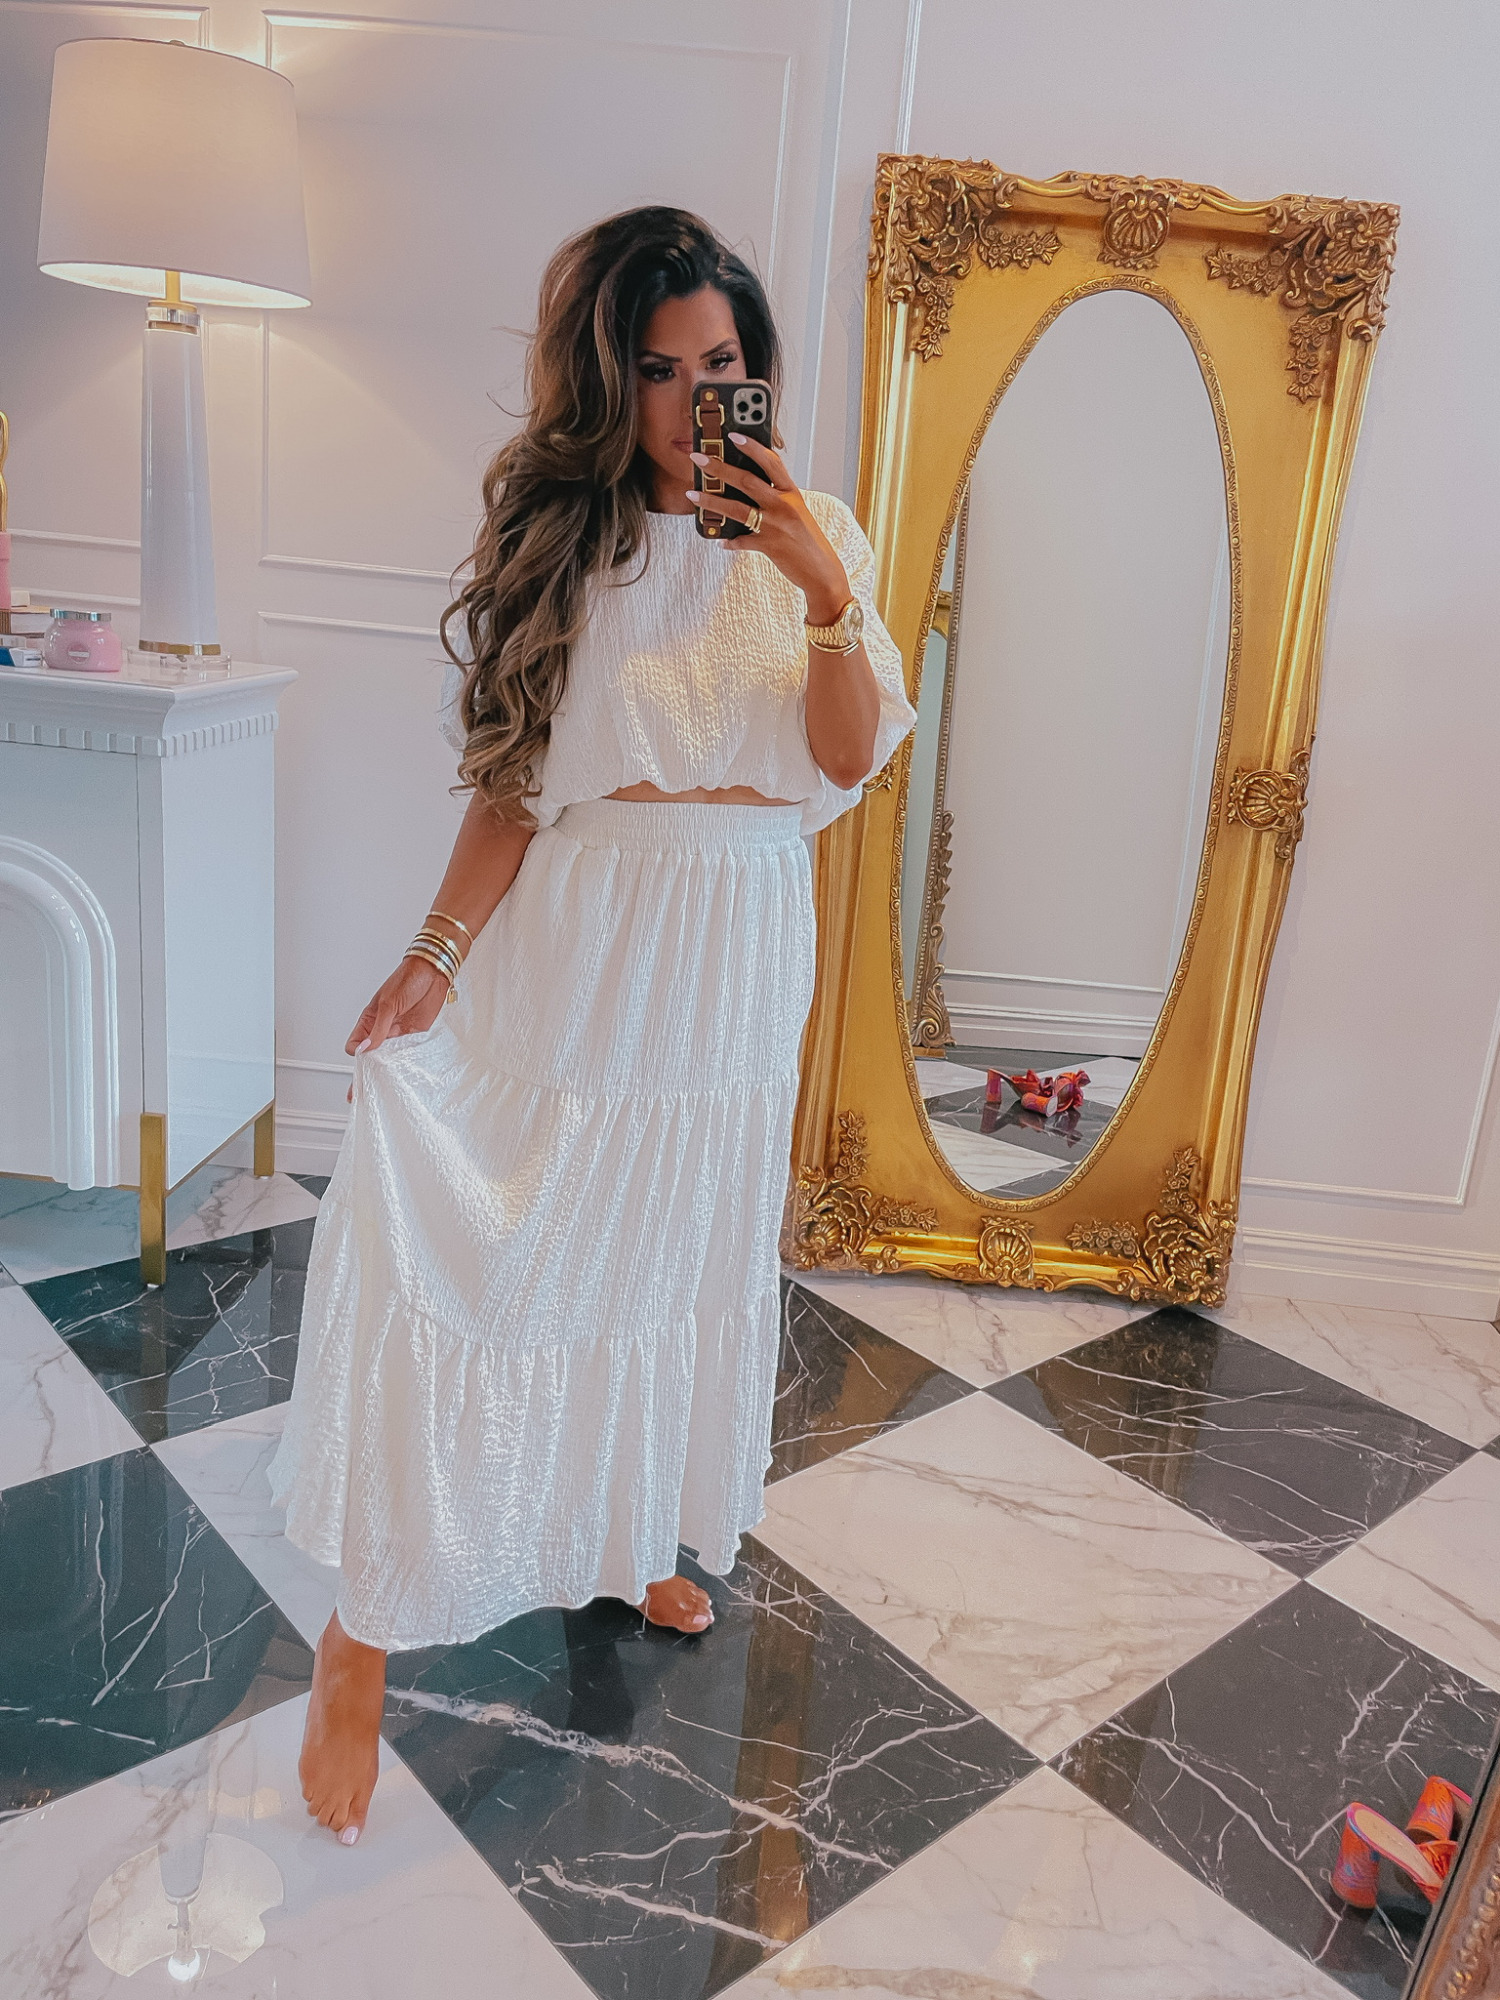 Red Dress Boutique, Try On Haul, Emily Ann Gemma, White Midi Skirt, White Midi Top, White Summer Outfit Ideas, White Top | Instagram Recap by popular US life and style blog, The Sweetest Thing: image of Emily Gemma wearing a white crop top and tiered maxi skirt and holding a smartphone in a Louis Vuitton phone case.